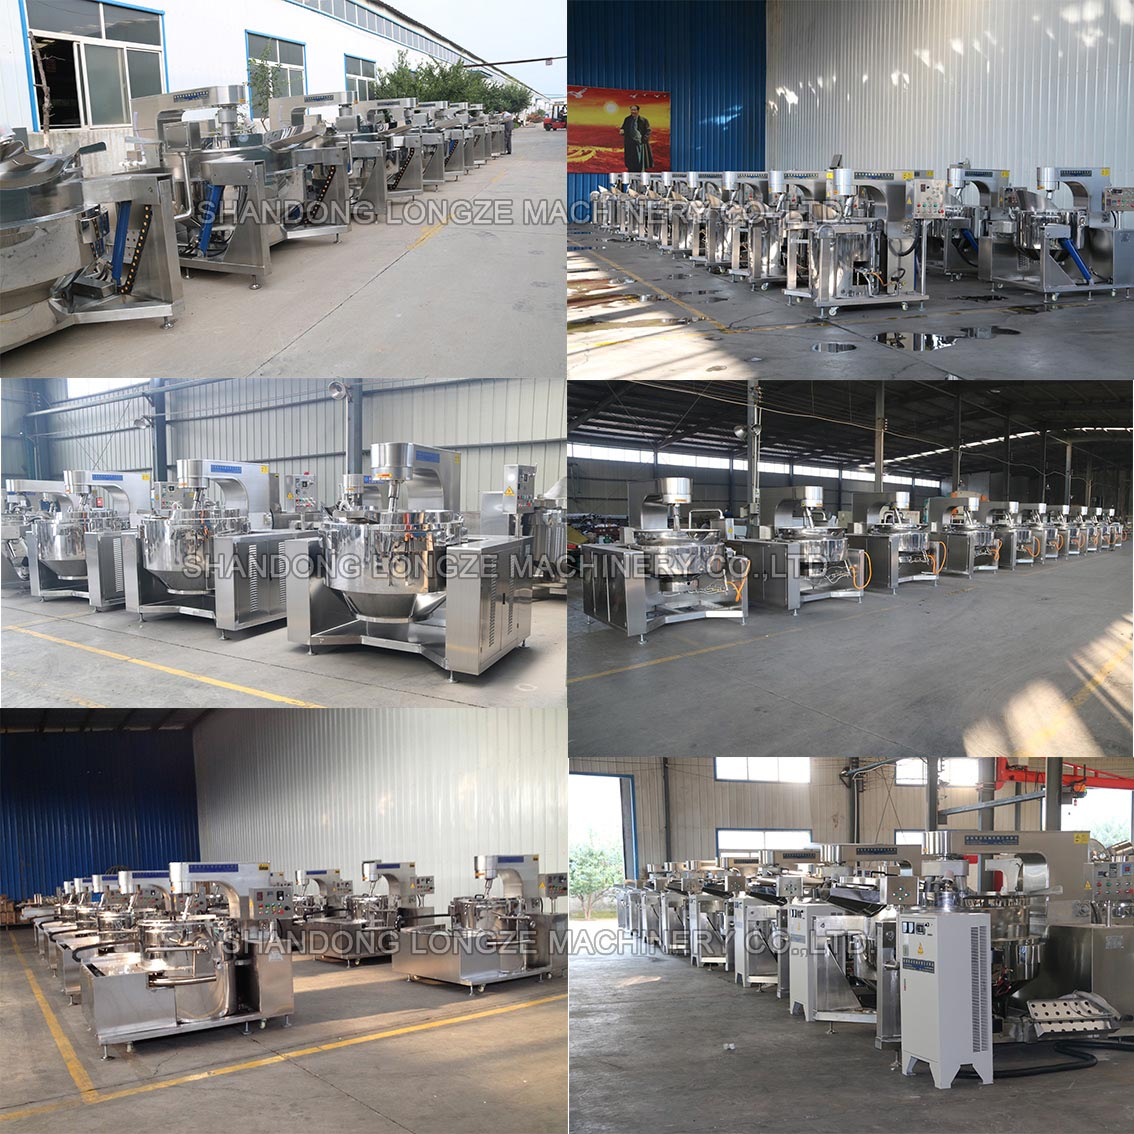 Gas-Fired Chili Sauce Cooking Mixer Manufacture